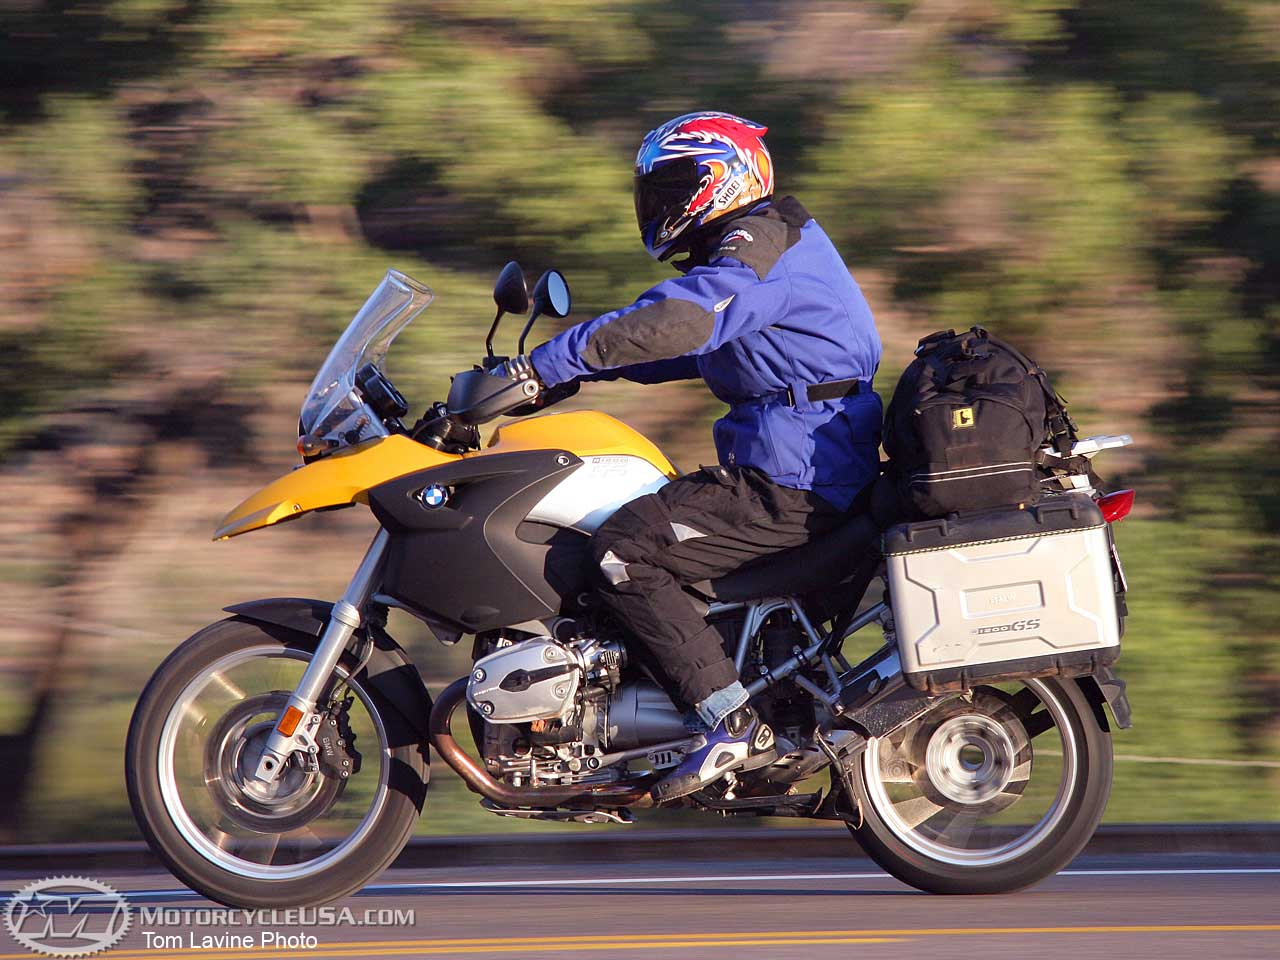 2005 BMW R1200GS - specs, photo and info